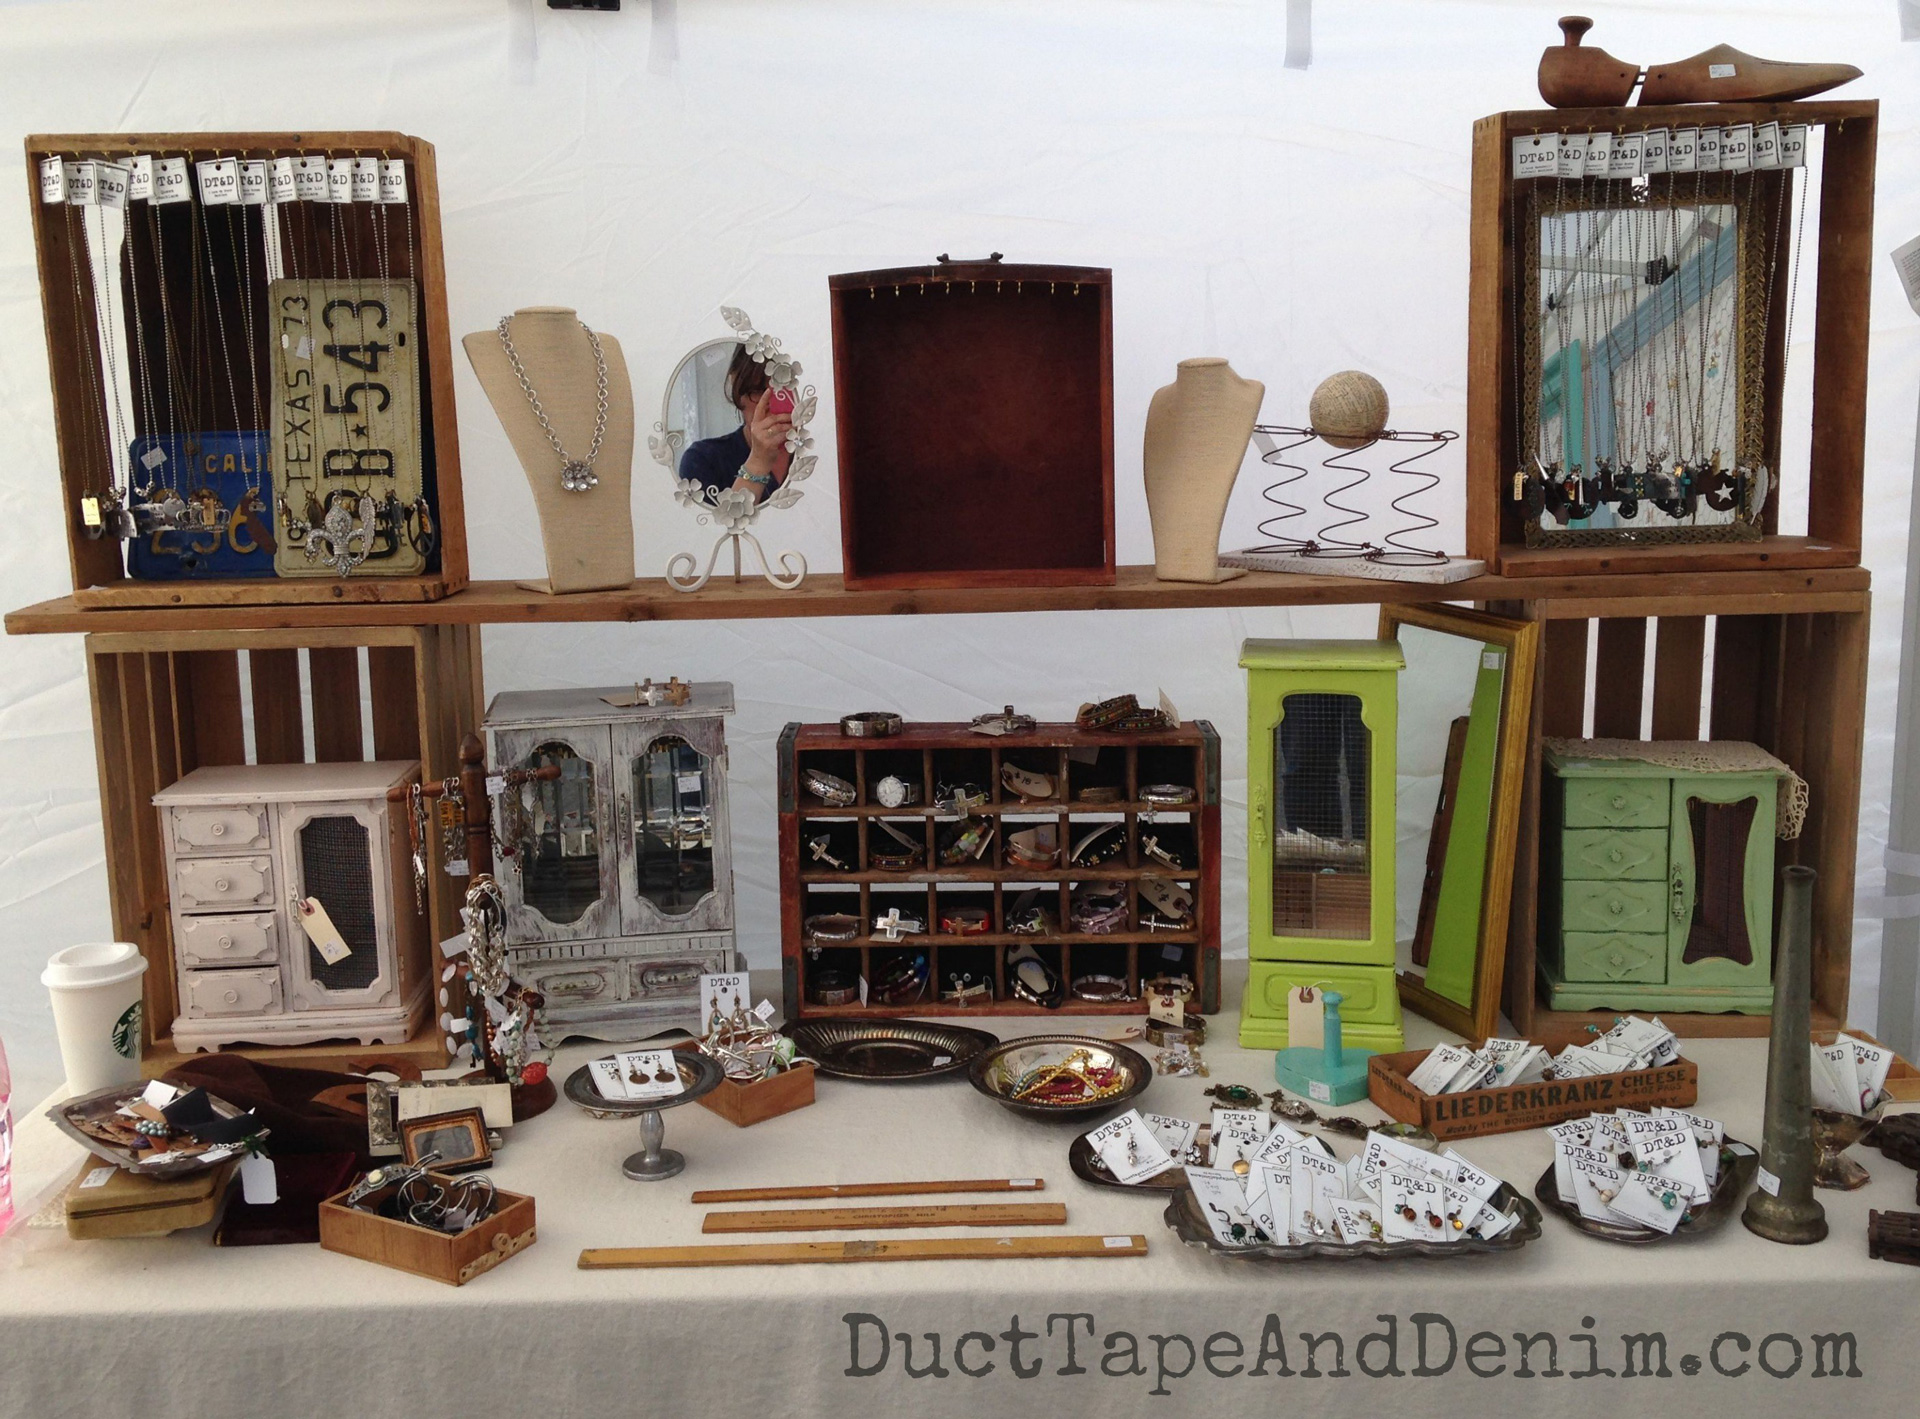 A DIY vintage window jewelry display clearly uses all kinds of retro decoration and jewelry display props.